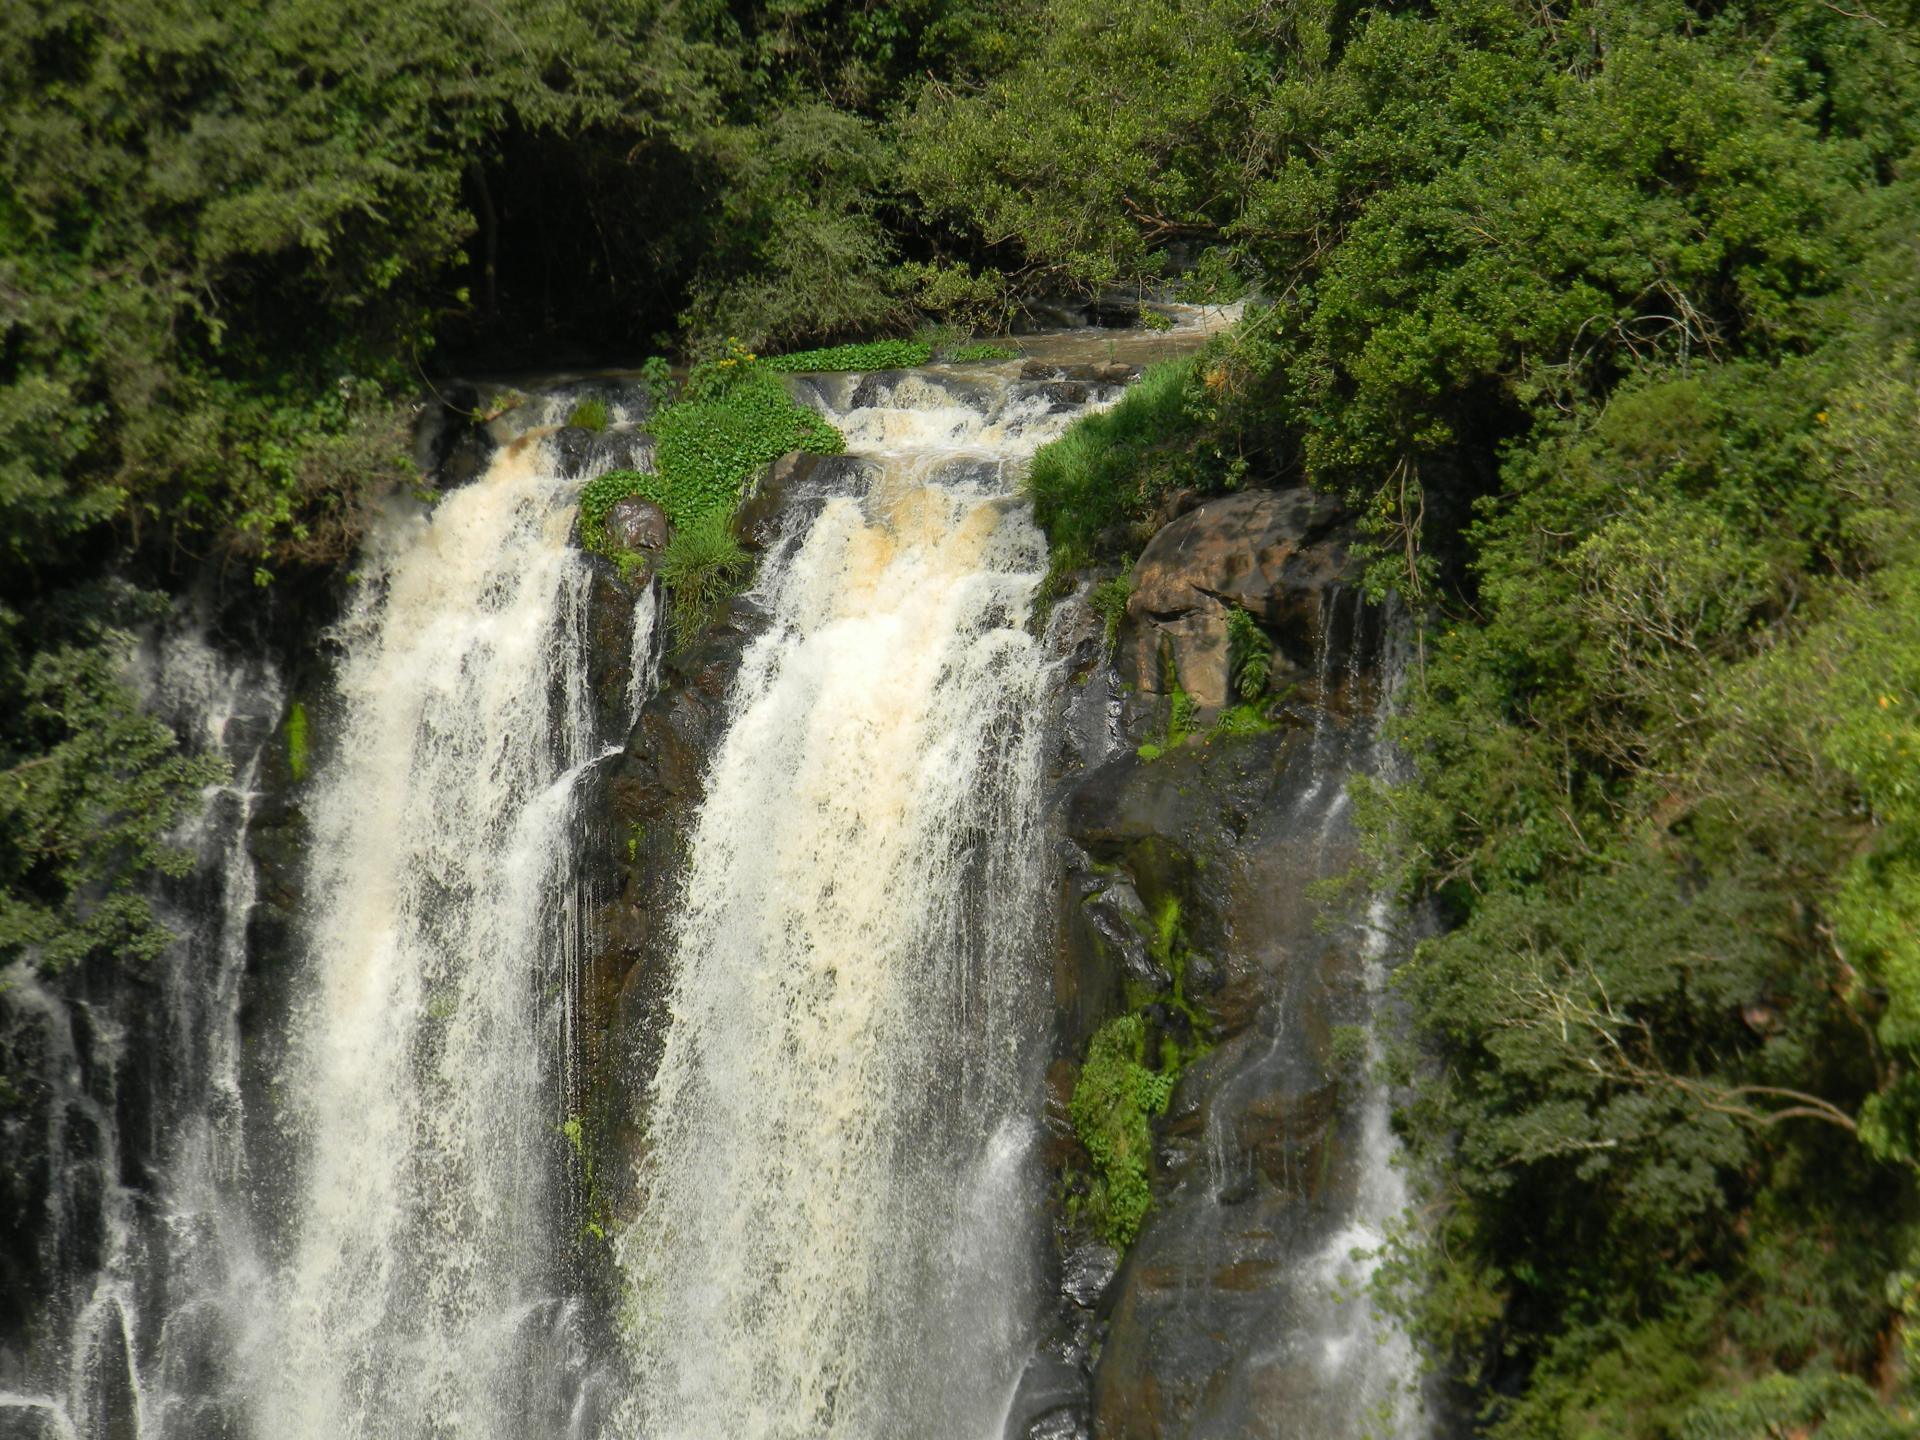 Thompson Falls Nyahururu / Kenya Adventure tours safaris